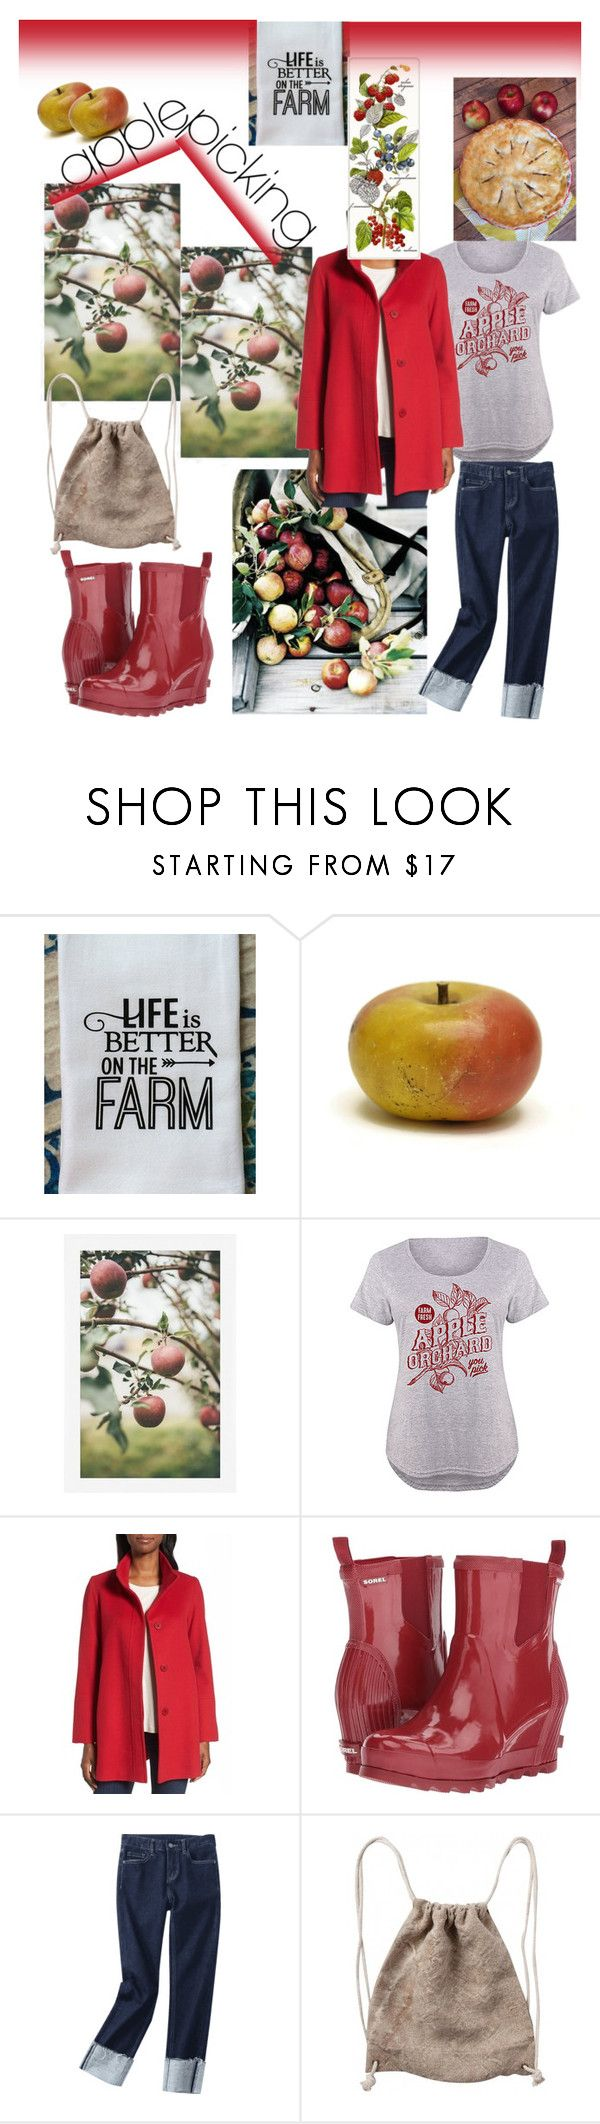 """""""Harvest Time: Apple Picking🍎🍎"""" by mdfletch ❤ liked on Polyvore featuring Pottery Barn, LC Trendz, Fleurette, SOREL, applepicking and plus size clothing"""